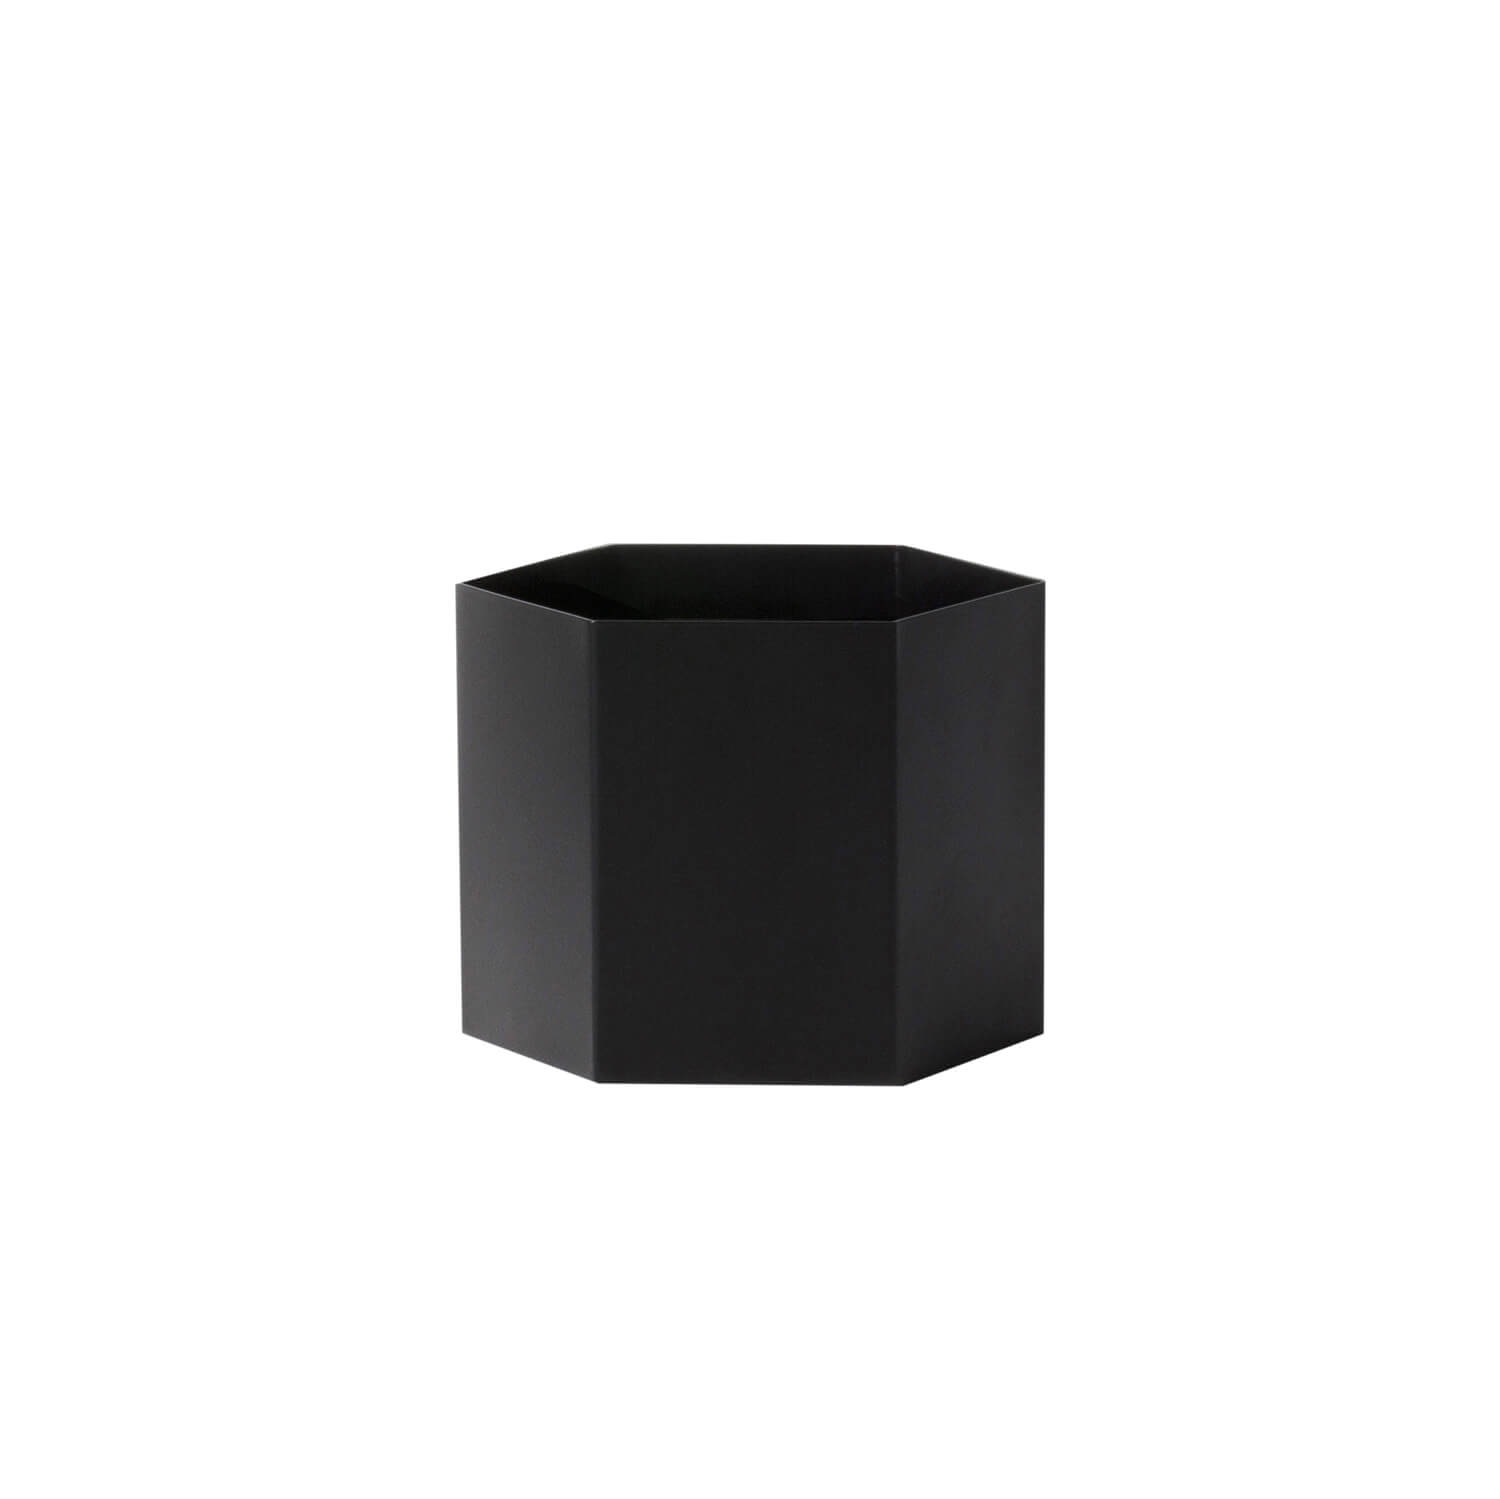 ferm living blumentopf hexagon schwarz xl ca 18 x h14 cm. Black Bedroom Furniture Sets. Home Design Ideas